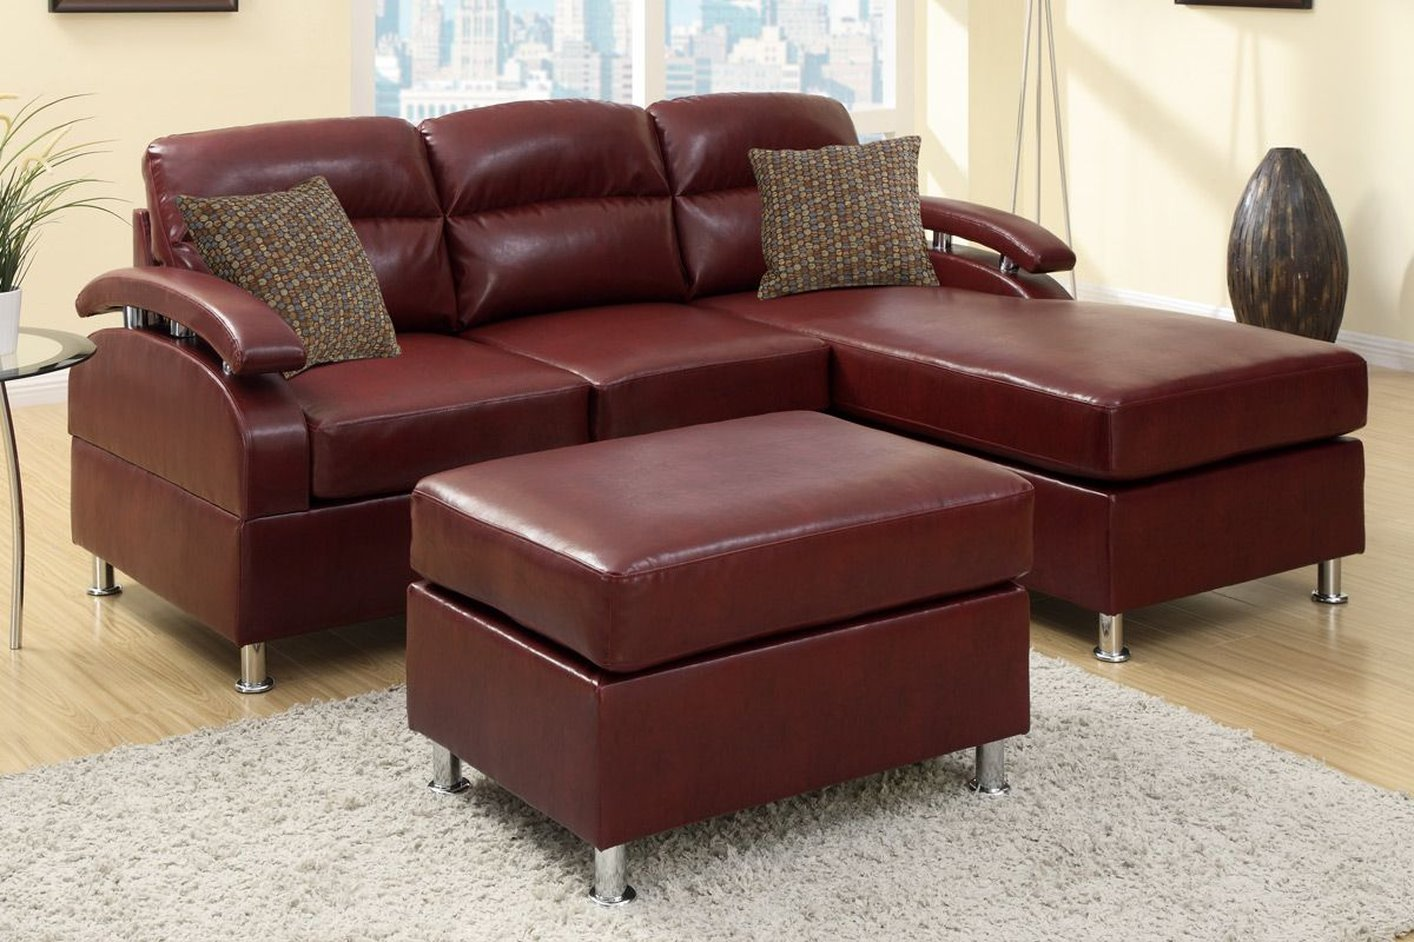 Poundex kade f7686 red leather sectional sofa and ottoman for Red leather sectional sofa with ottoman